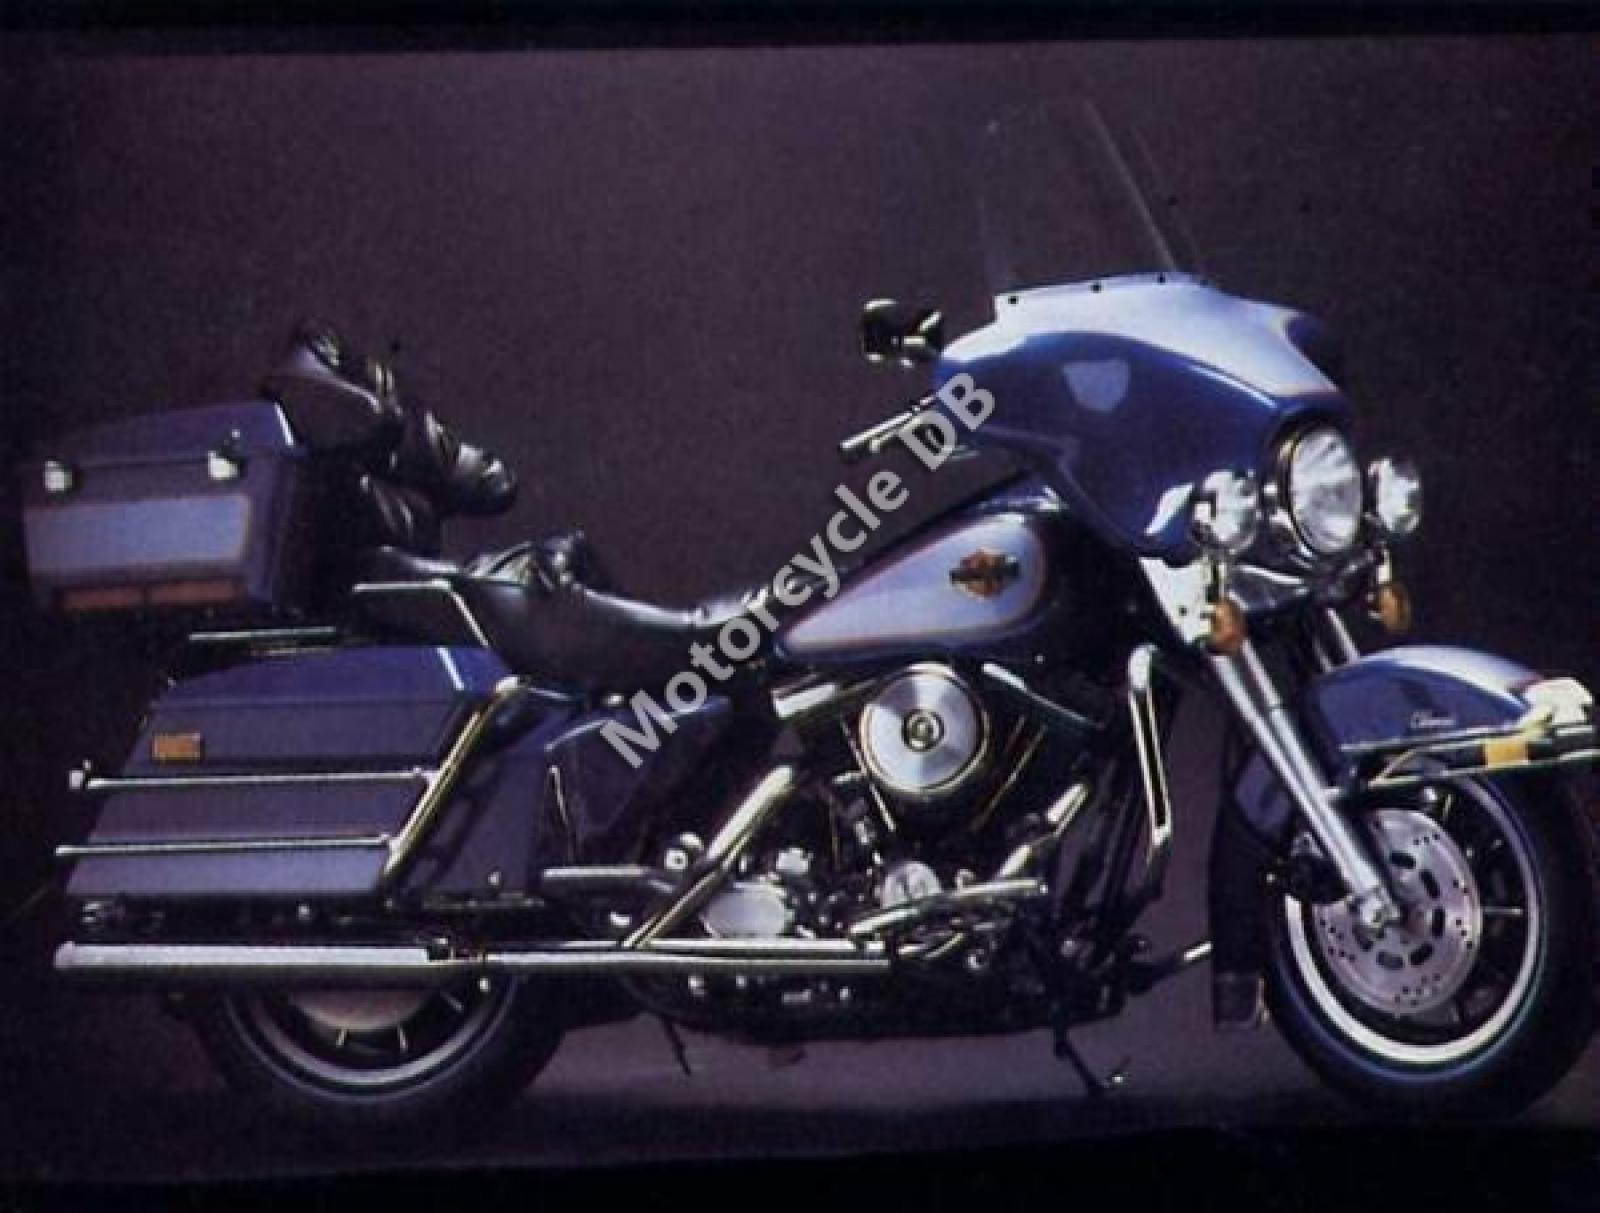 Harley-Davidson FLHTC 1340 Electra Glide Classic 1991 images #79900